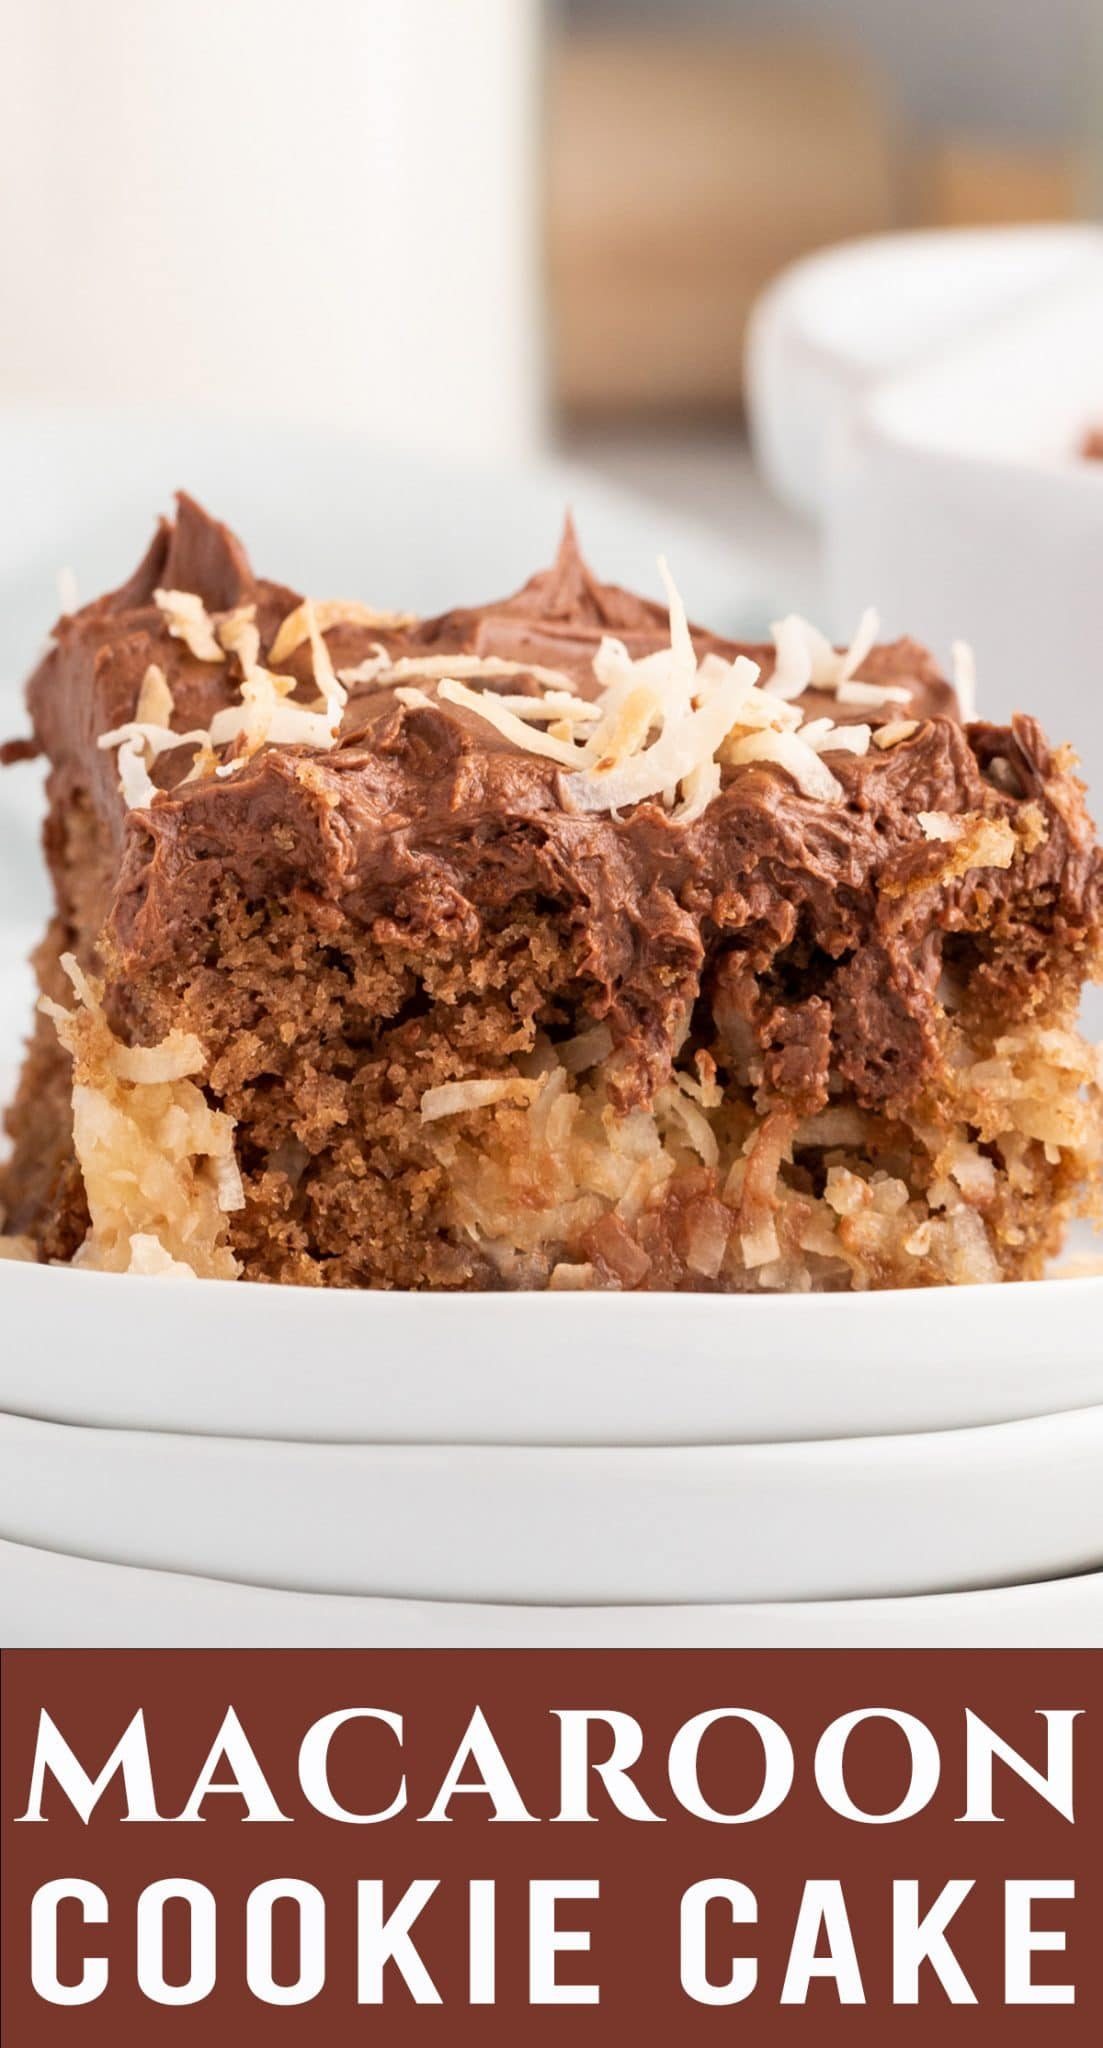 A light chocolate cake with pockets of a coconut surprise. This Macaroon Cookie Cake is uniquely sweet and has a melt in your mouth chocolate frosting. via @thebestcakerecipes